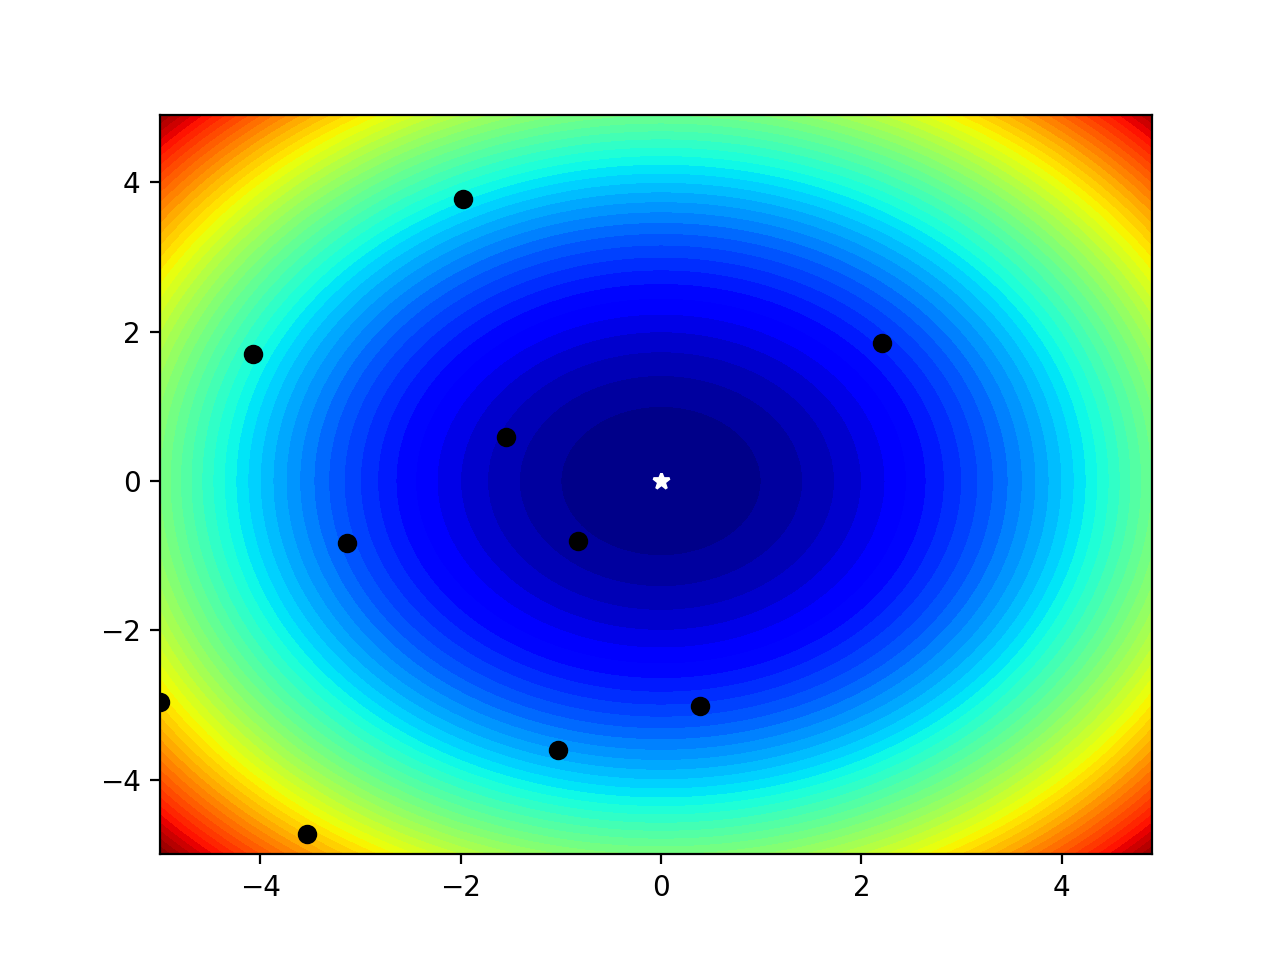 Filled Contour Plot of a Two-Dimensional Objective Function With Optima and Input Sample Marked